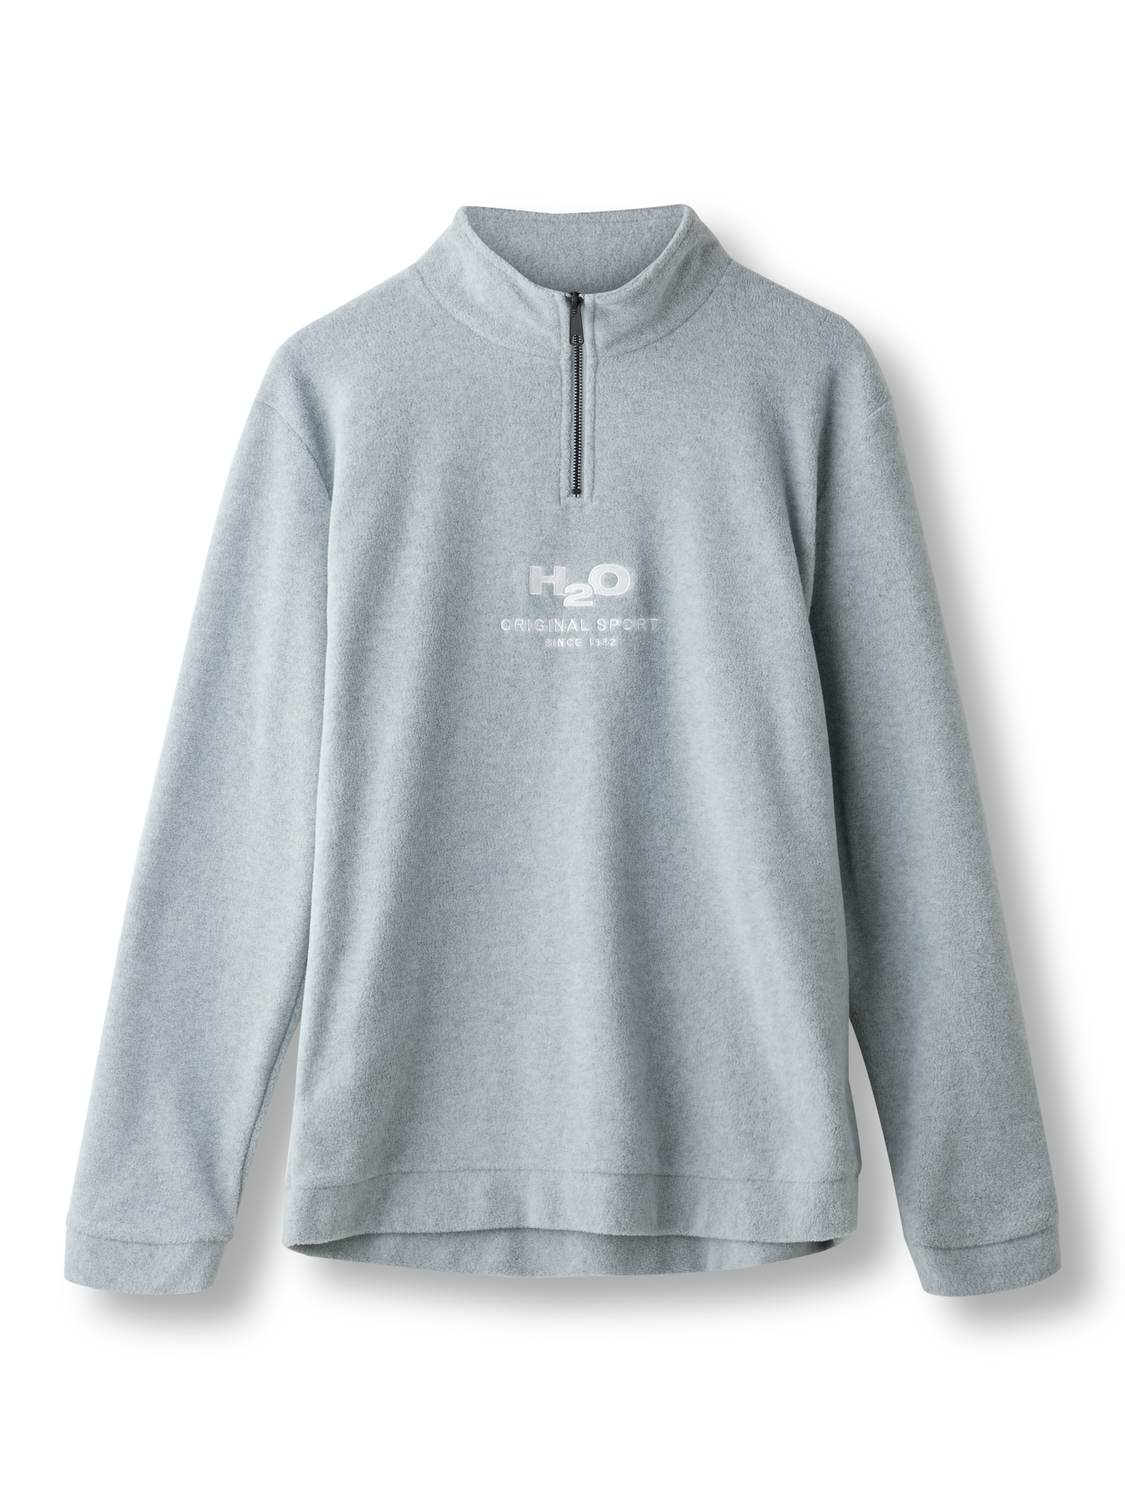 H2O Blåvand Fleece Half Zip Lt Grey | GATE 36 Hobro